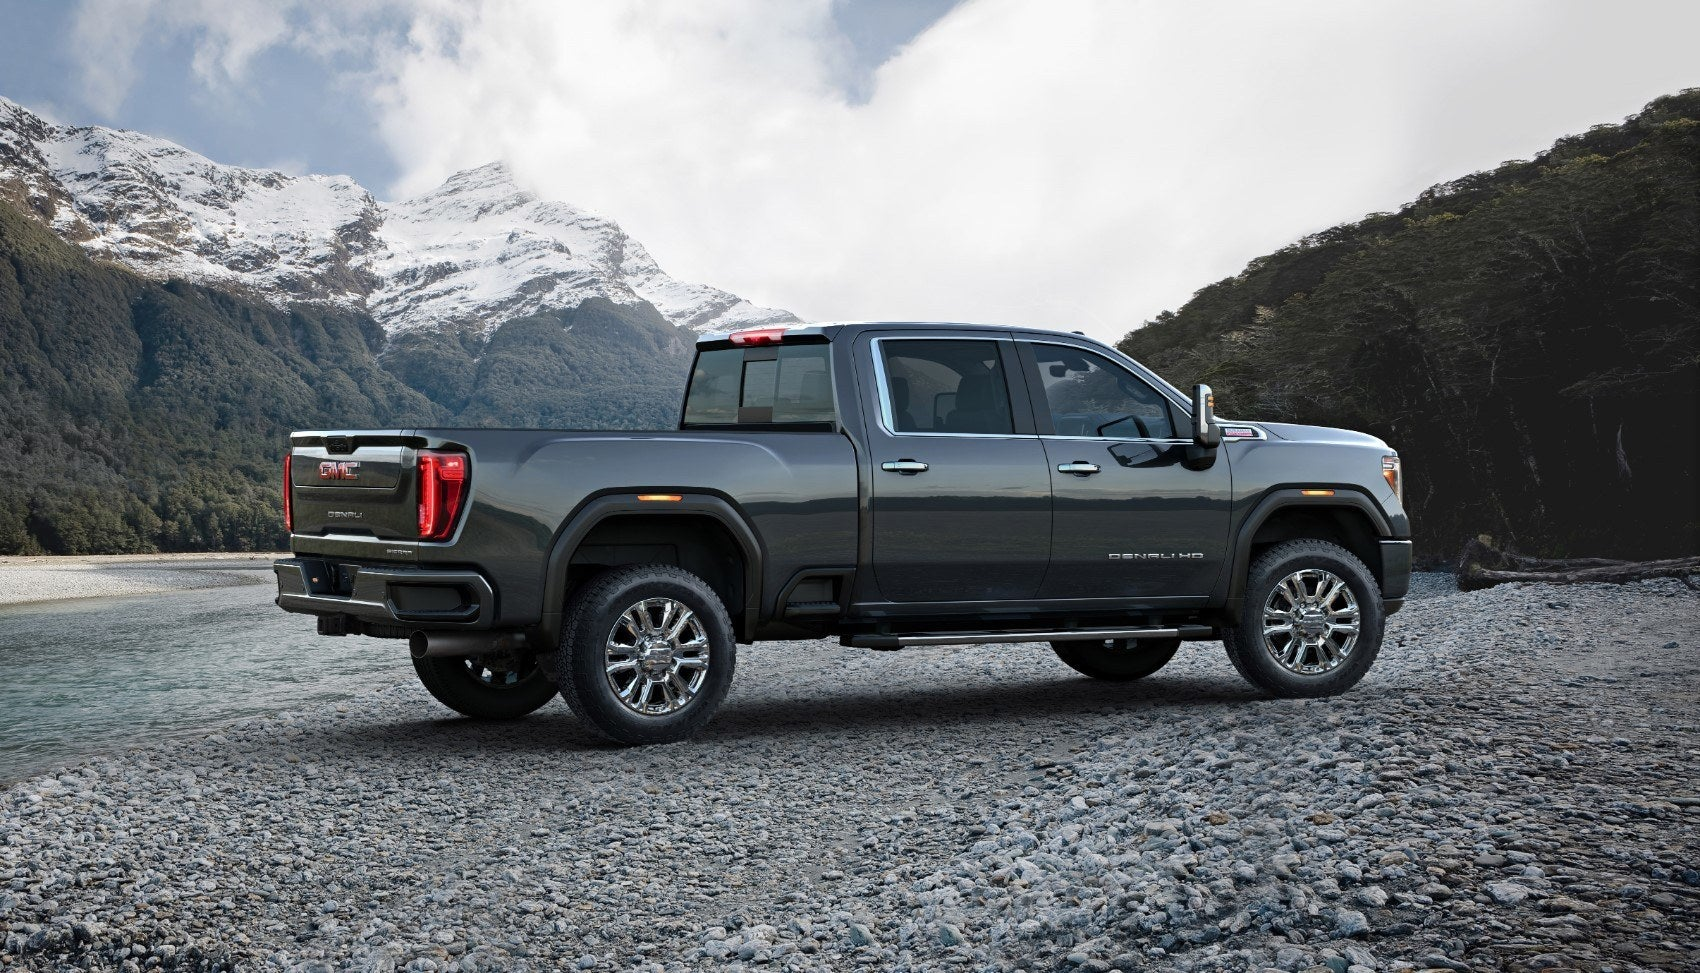 2020 GMC Sierra HD: New Towing Tech & An Allison Upgrade